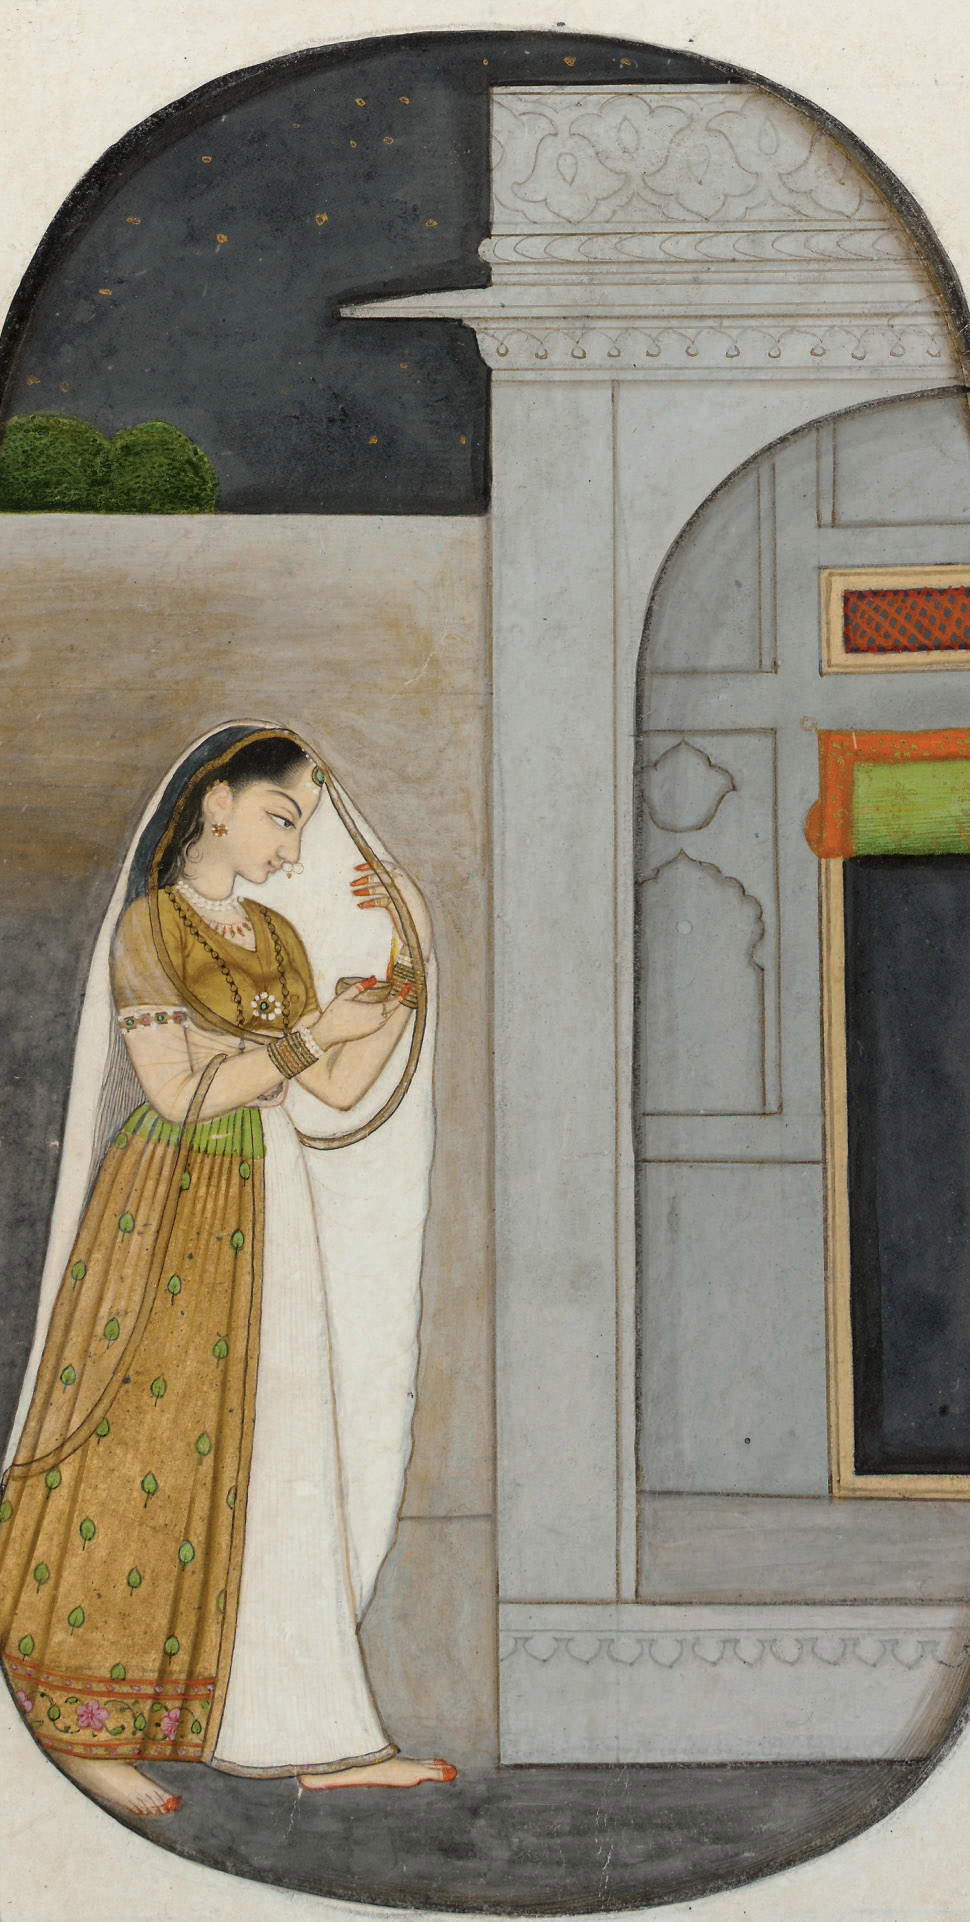 A Painting of a Princess on He